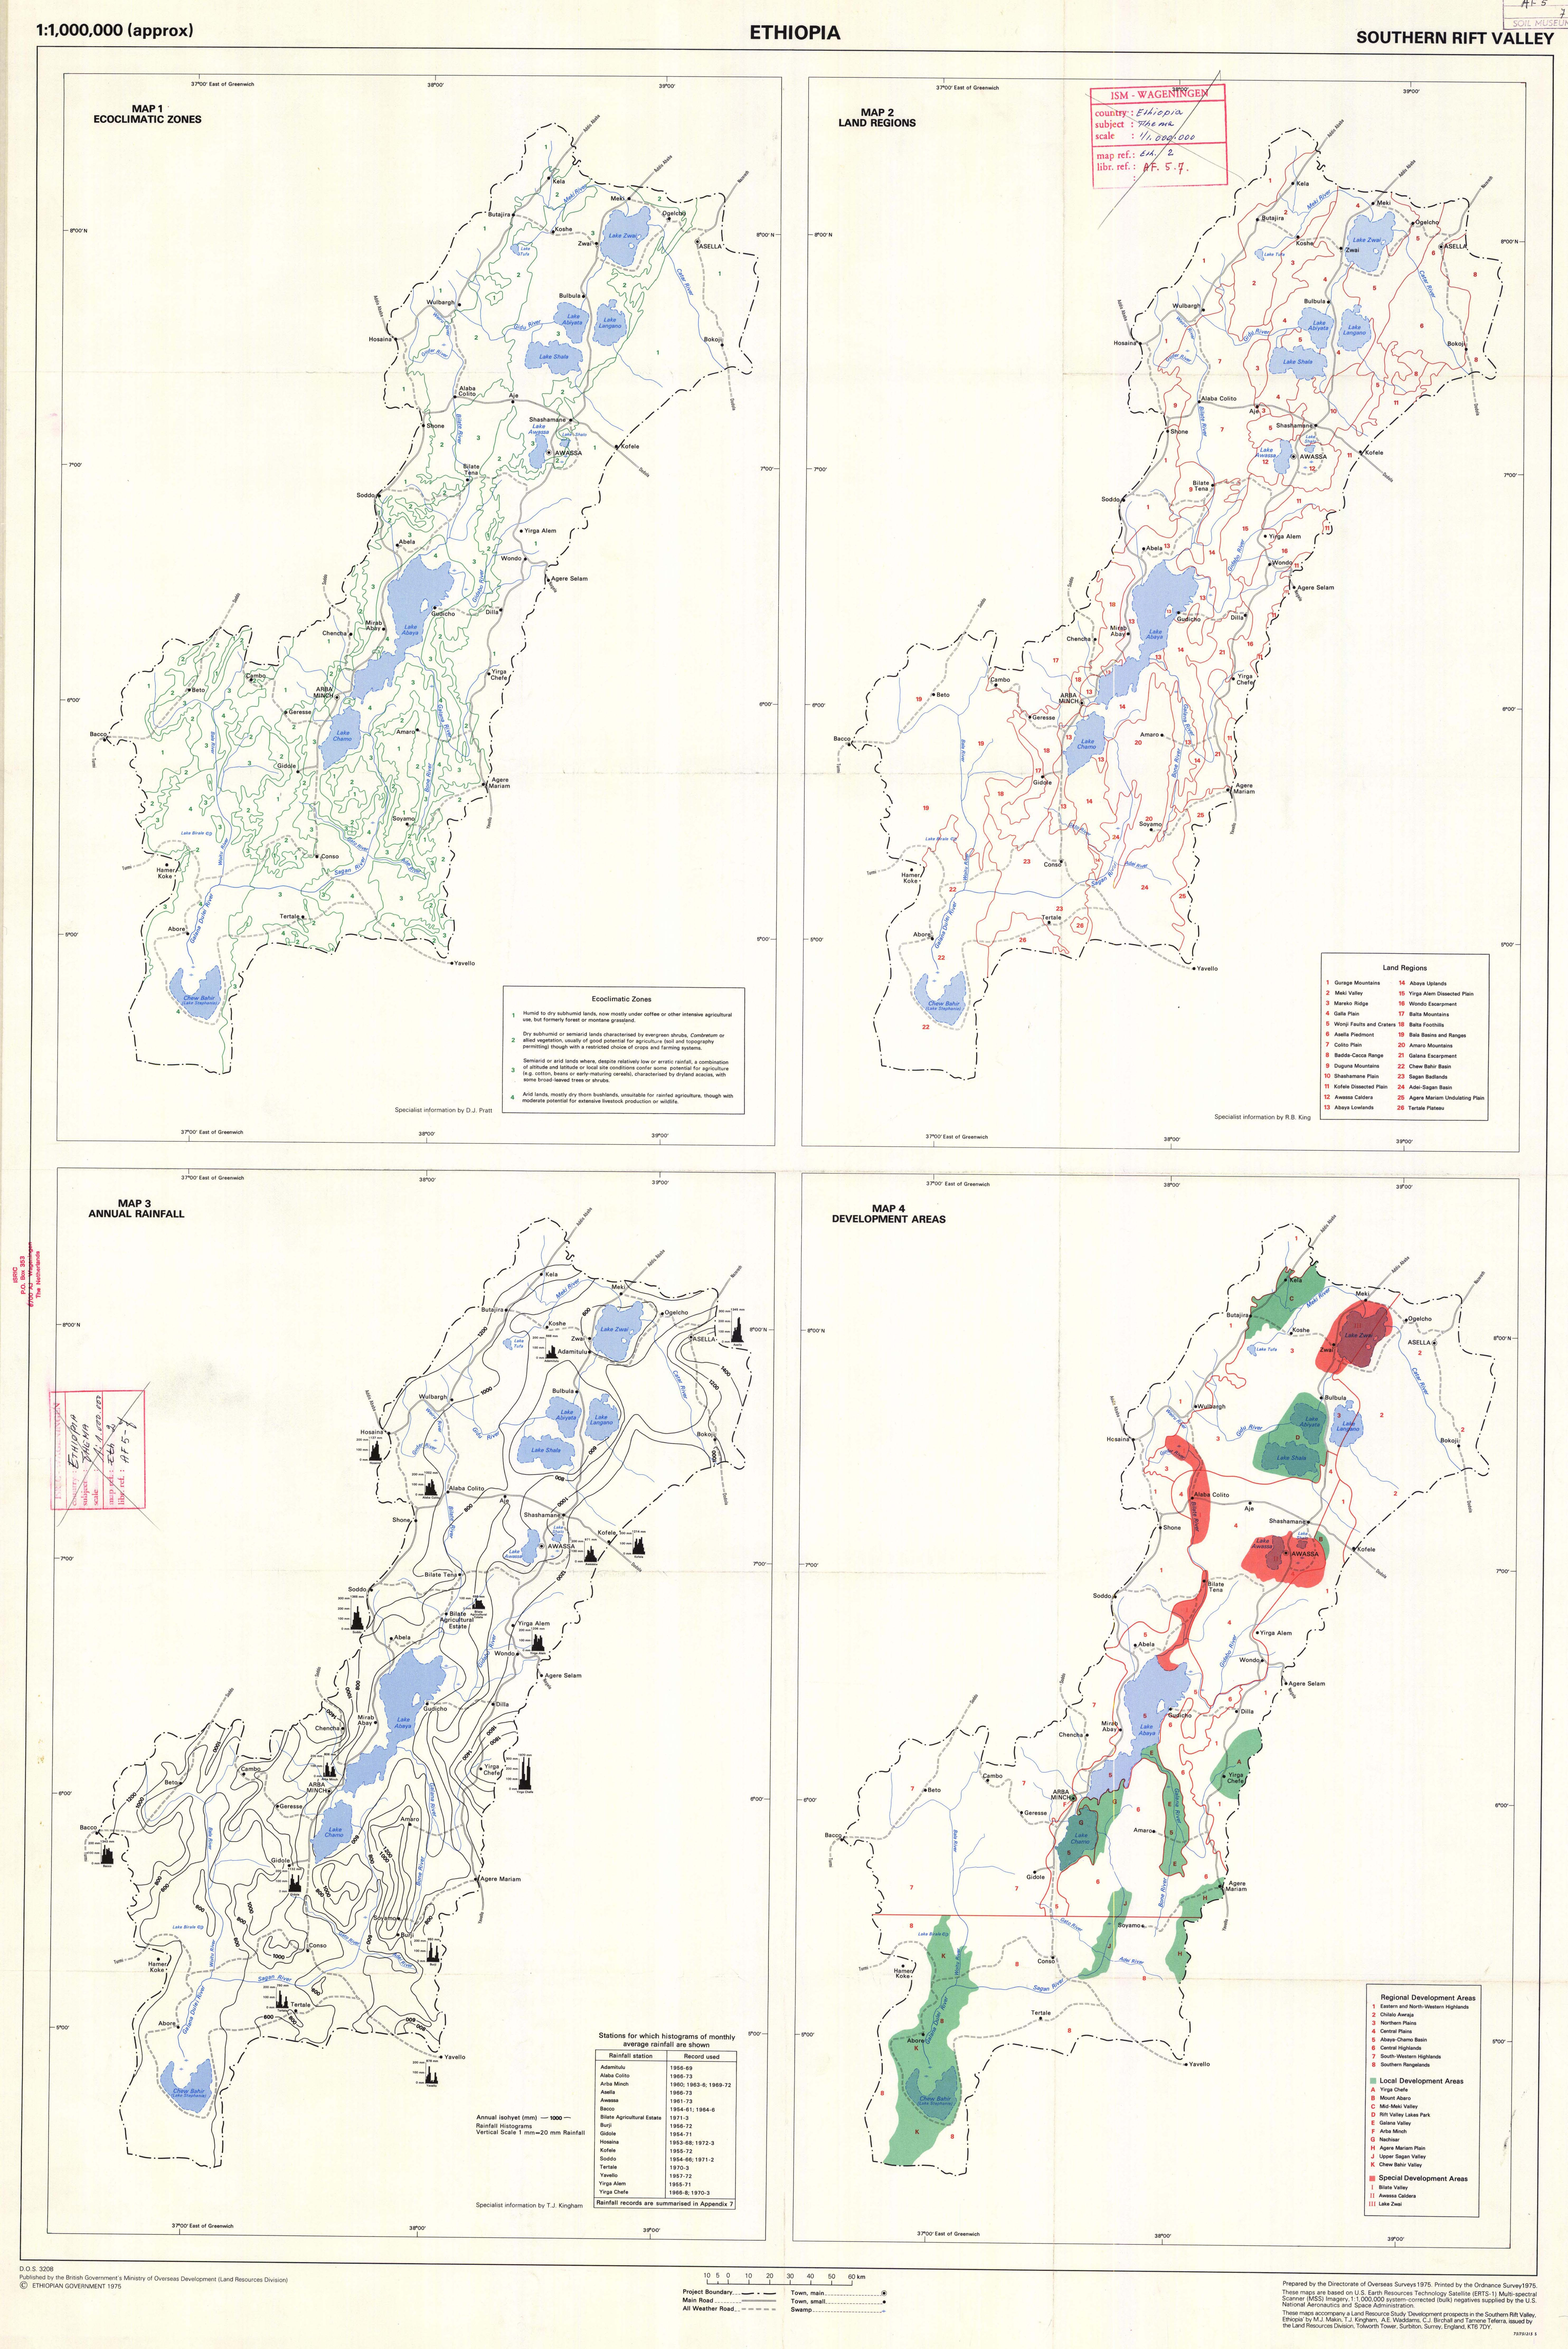 Ethiopia  Southern Rift Valley  Map 1  Eco-Climatic Zones